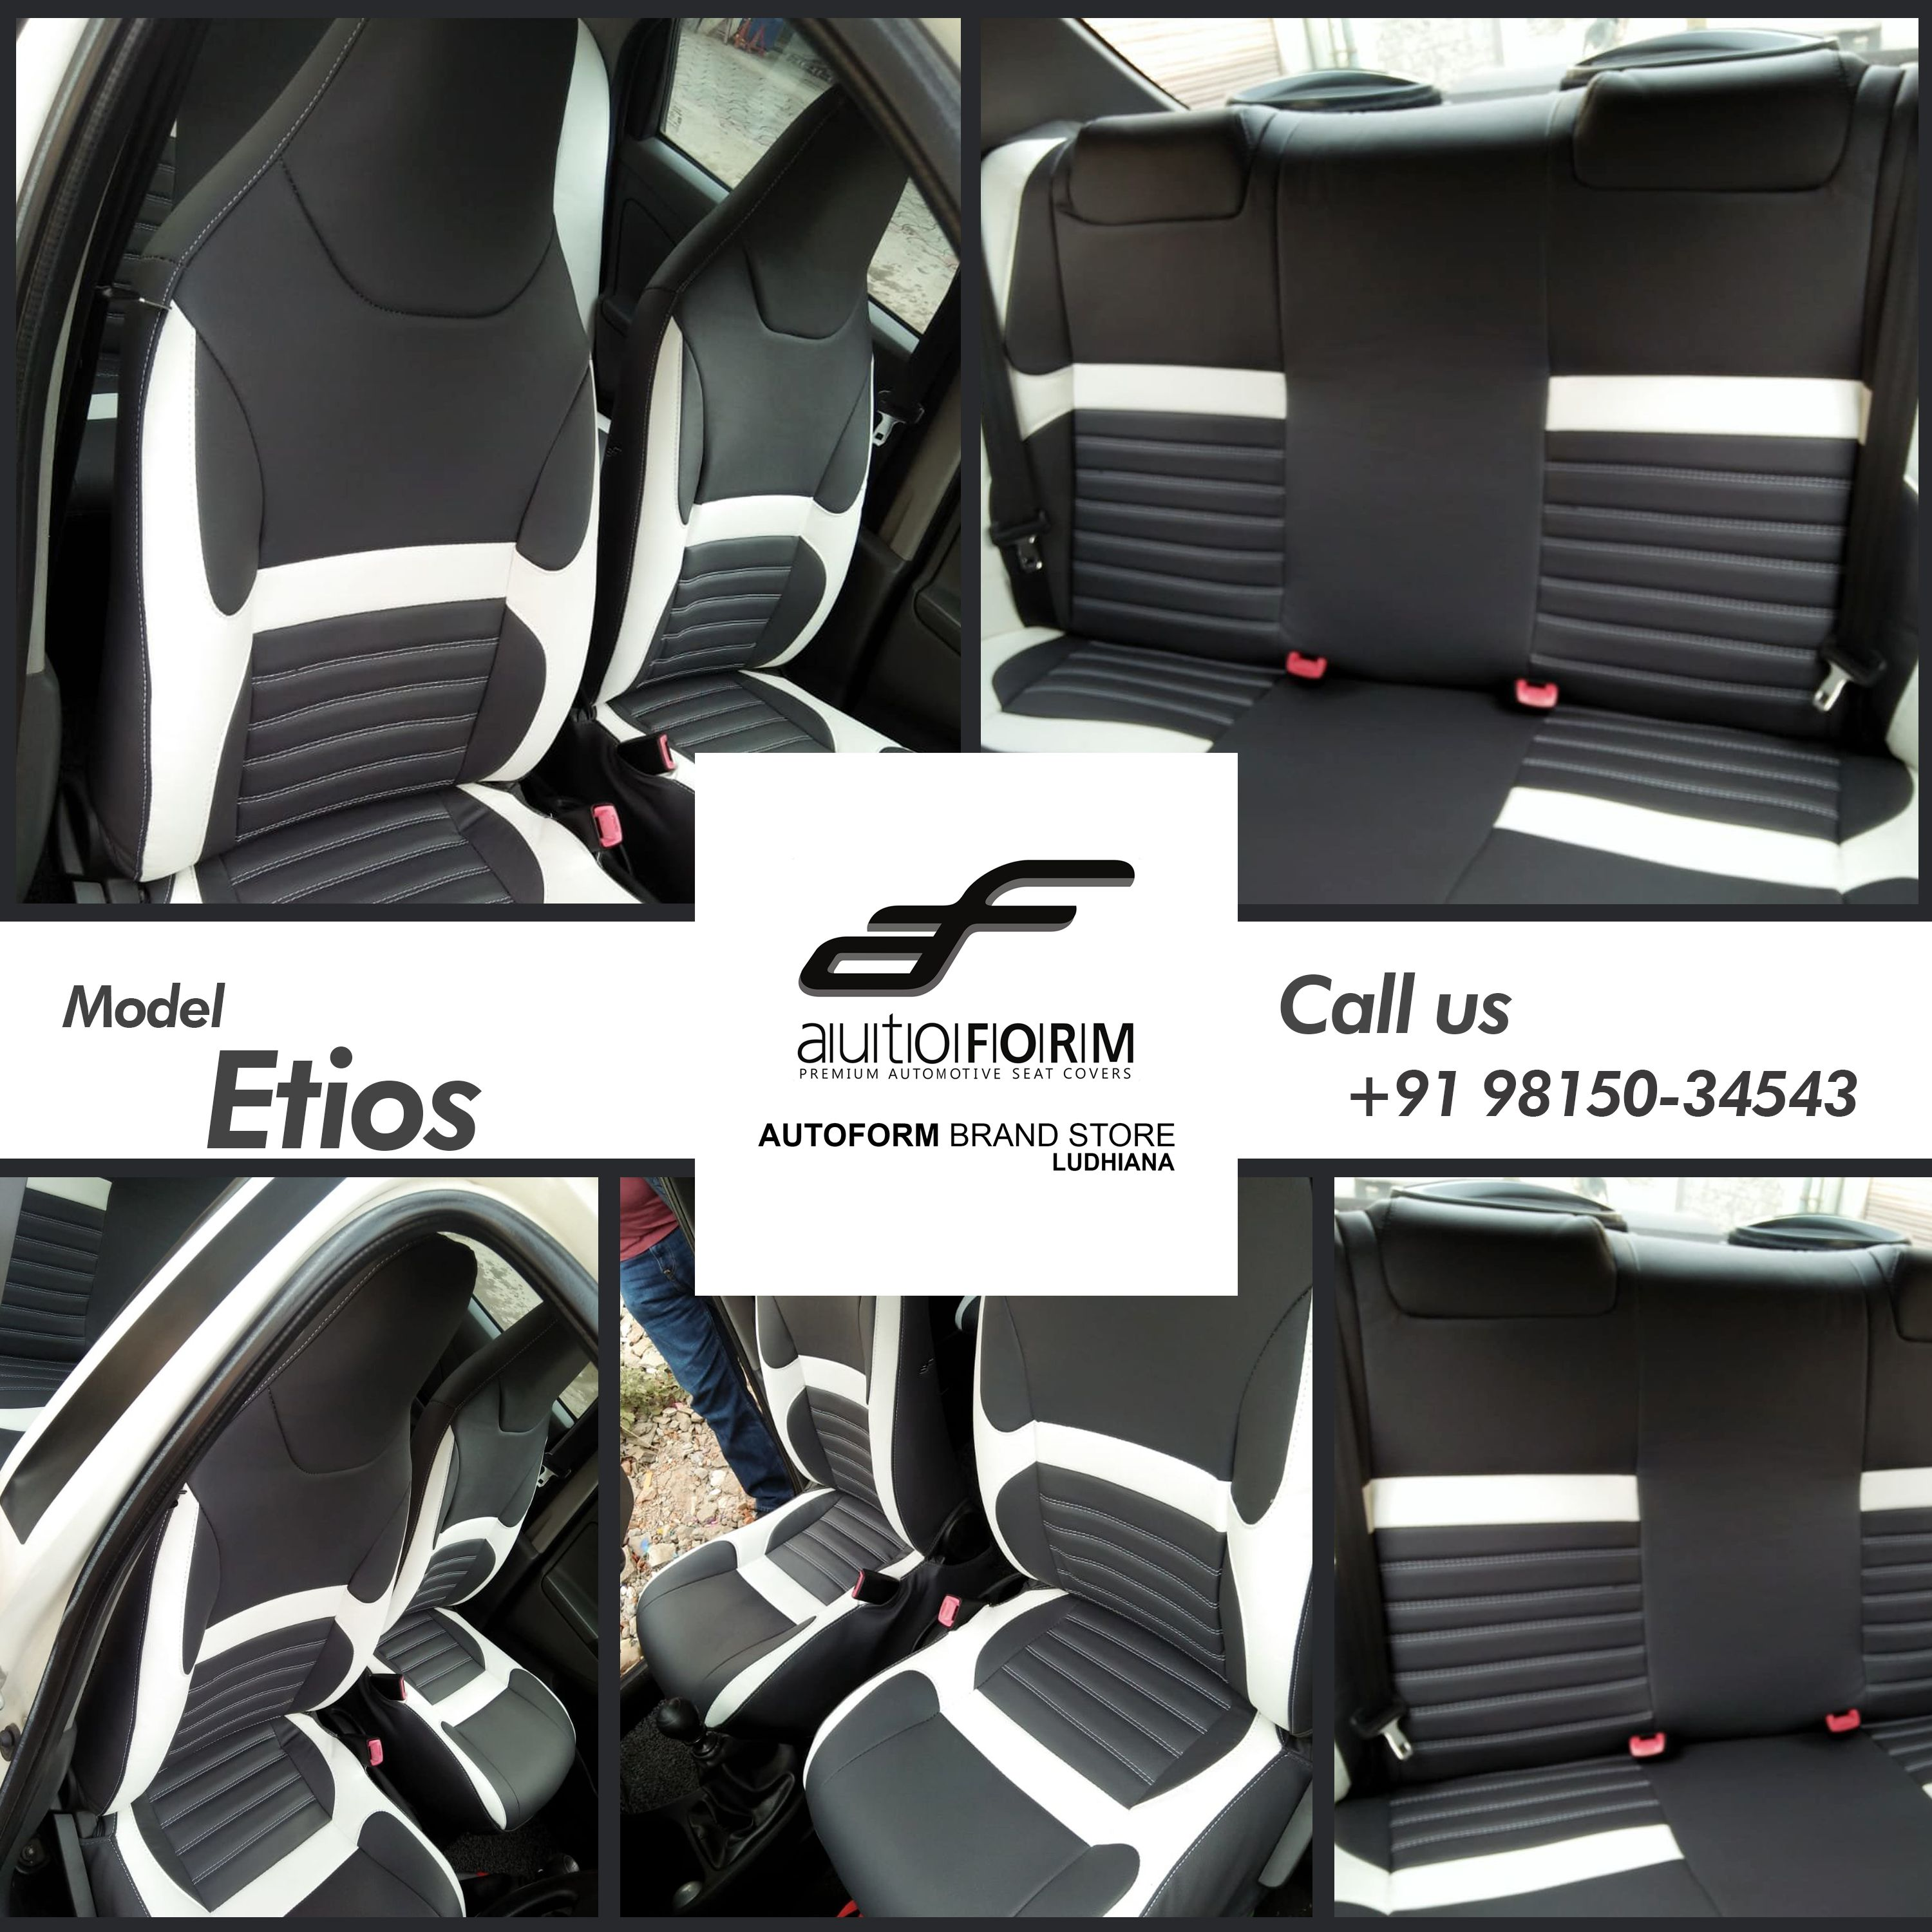 Toyota Etios Seat Are Suited With Branded Riviera Series Car Seat